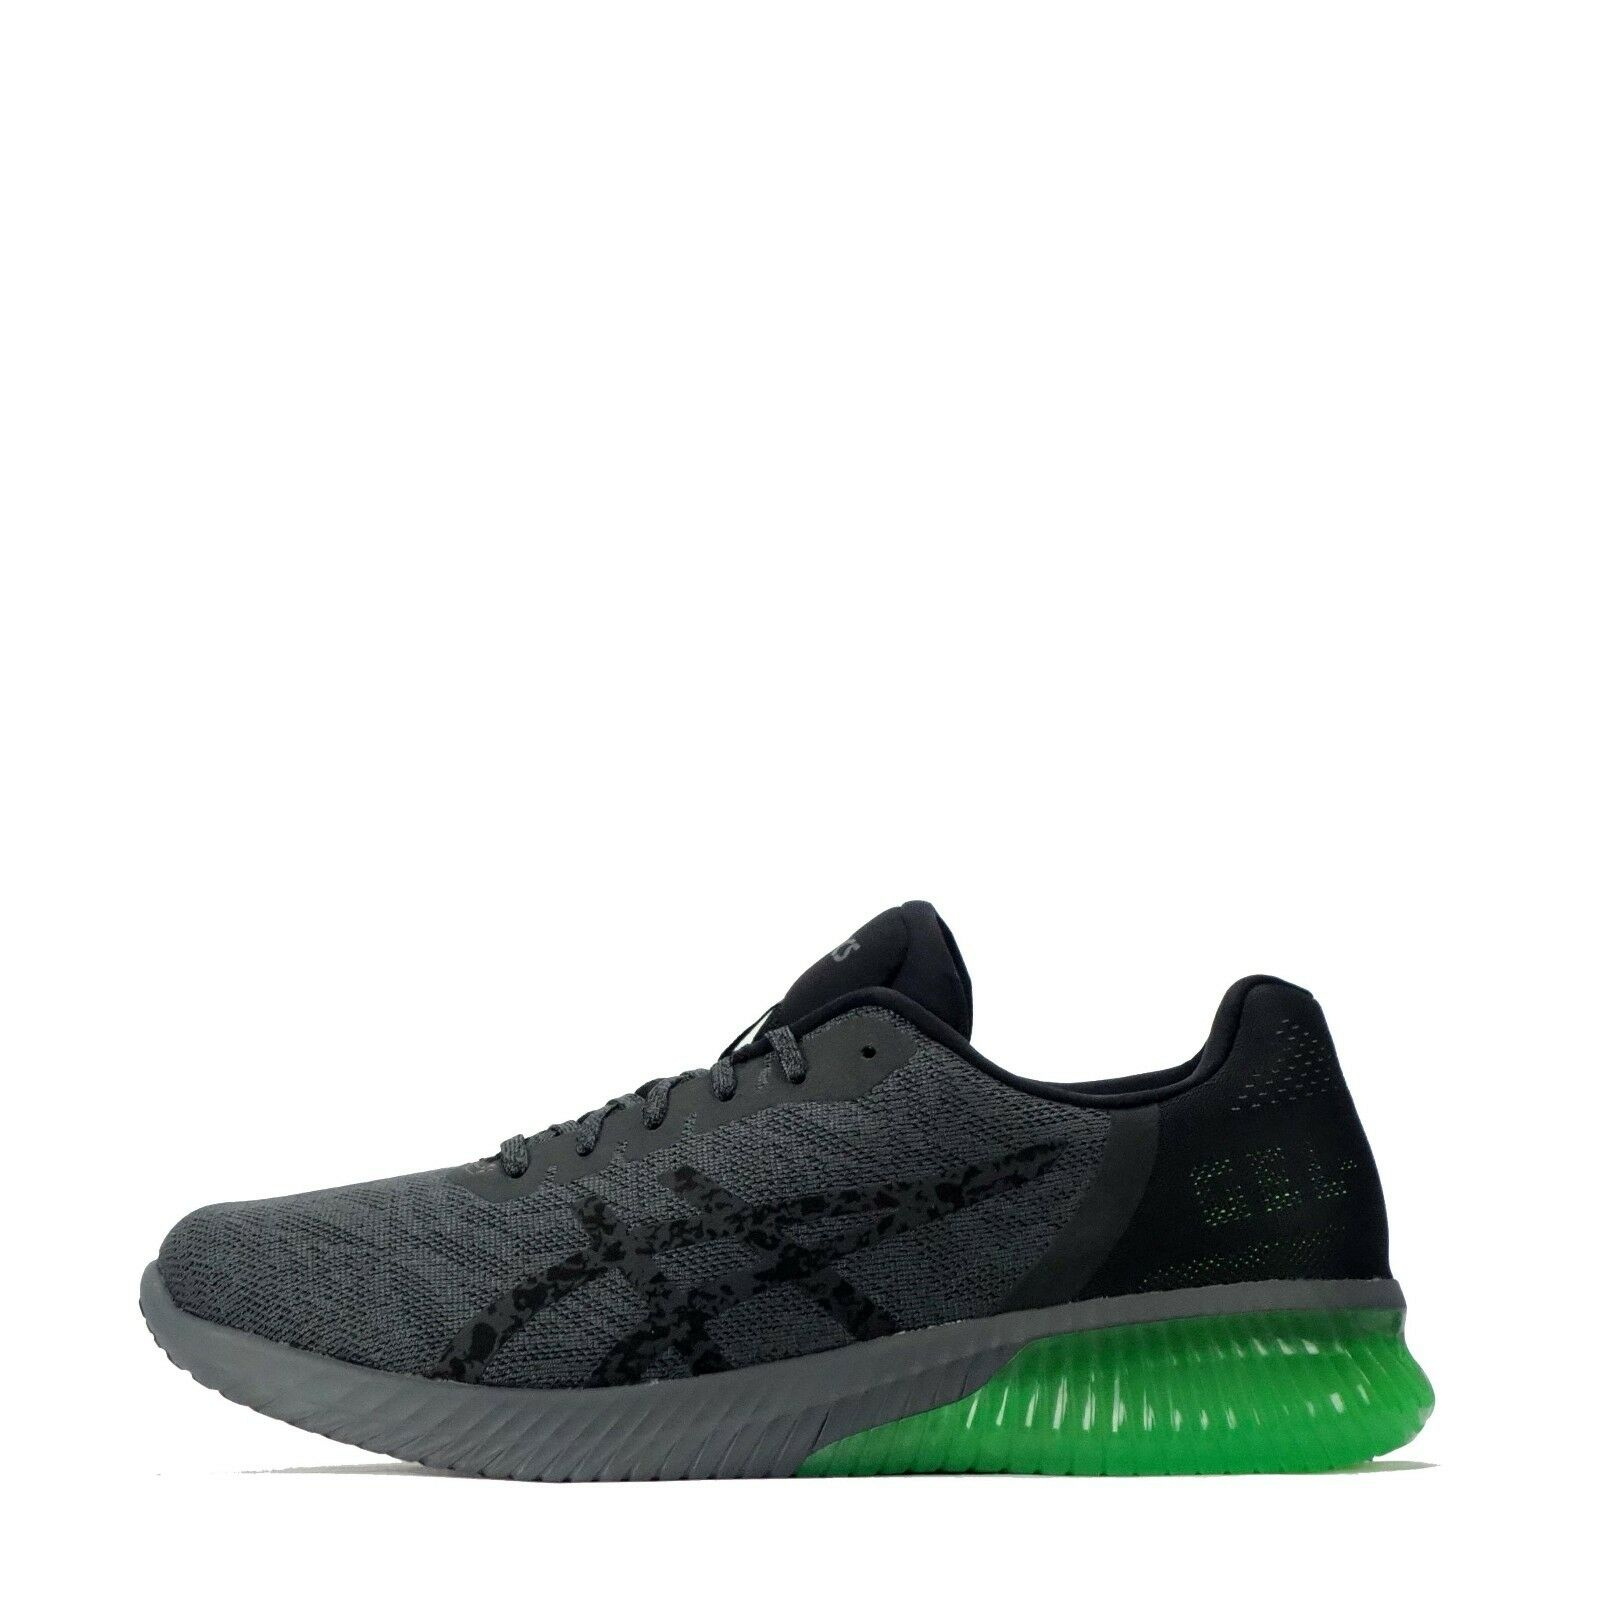 Asics Gel Kenun Men's Casual Sport Running Shoes in Dark Grey/Green The most popular shoes for men and women